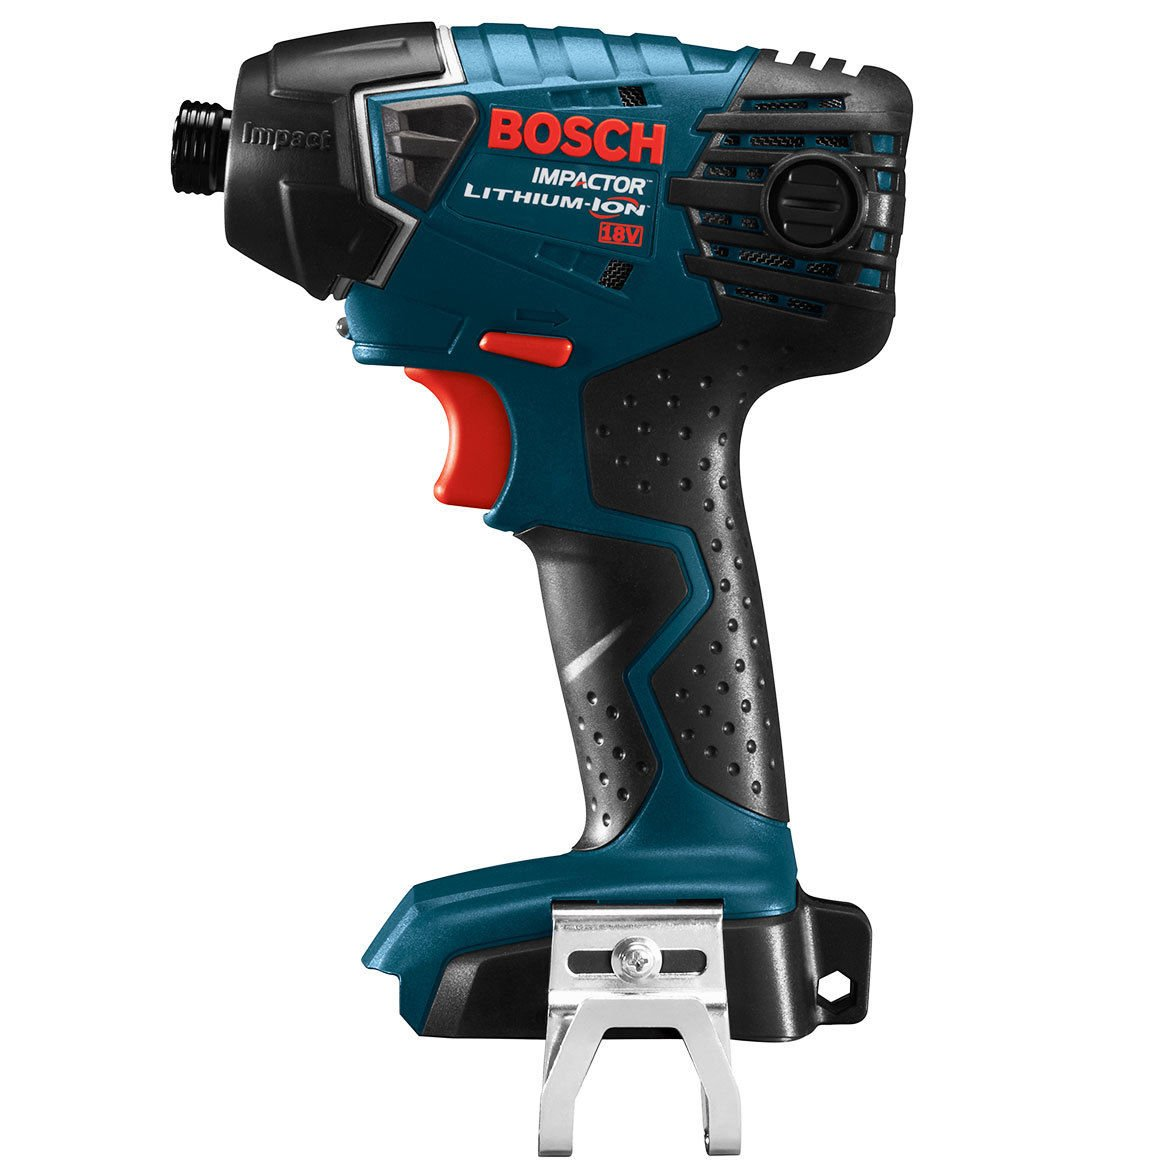 Bosch Bare-Tool 25618B 18-Volt Lithium-Ion 1/4-Inch Hex Impact Driver (Certified Refurbished)